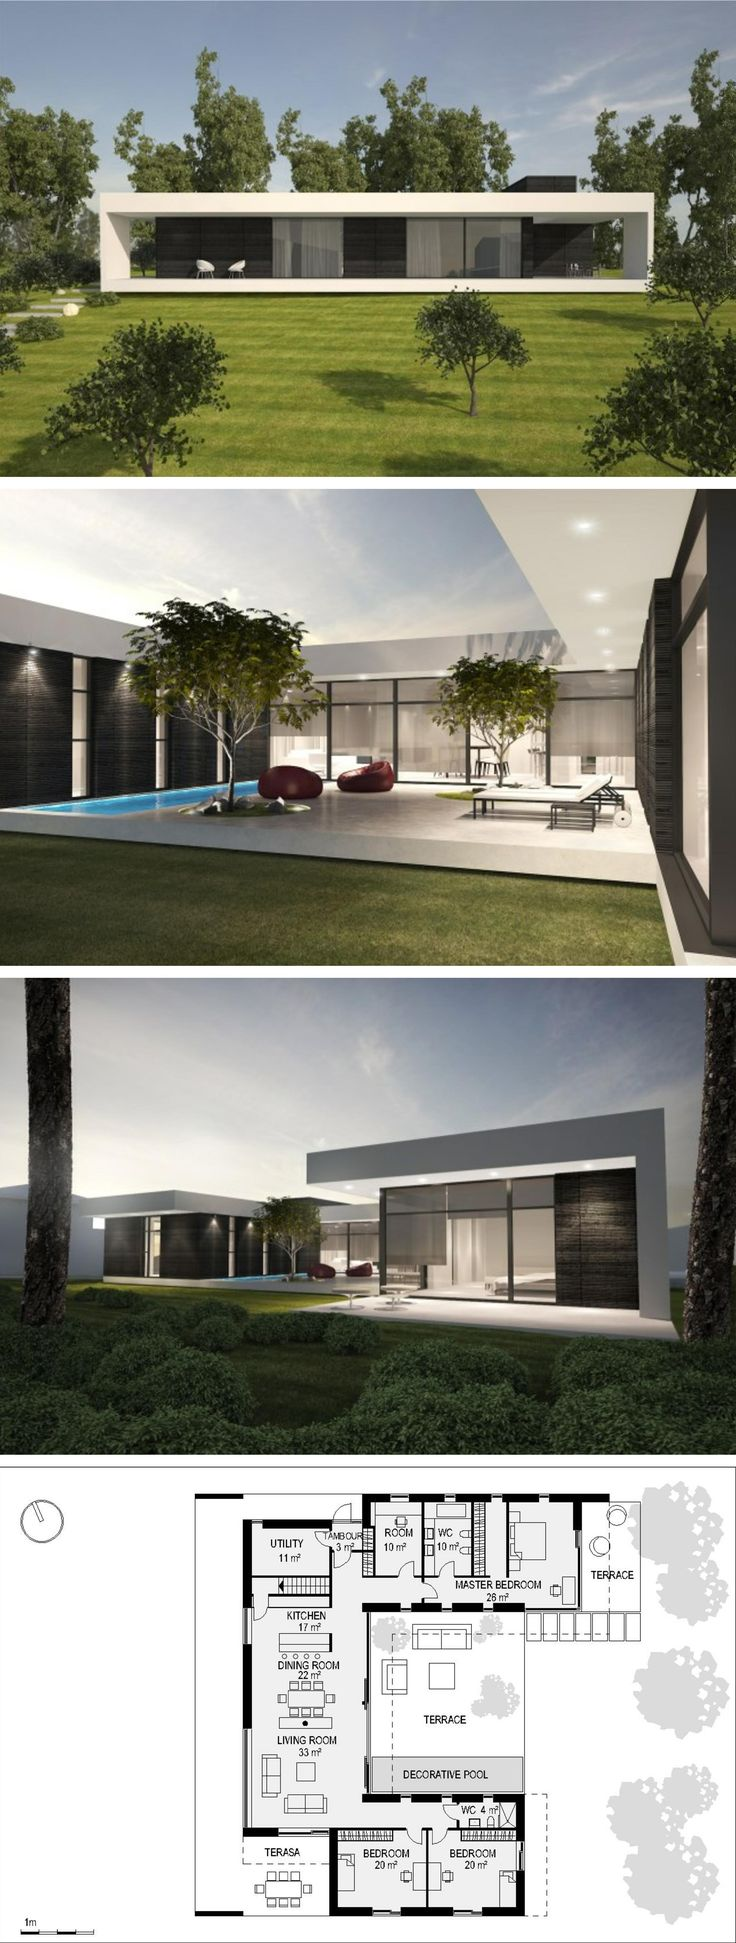 Contemporary luxury design house / Modern architecture & villa inspiration byCOCOON.com #COCOON Dutch designer brand